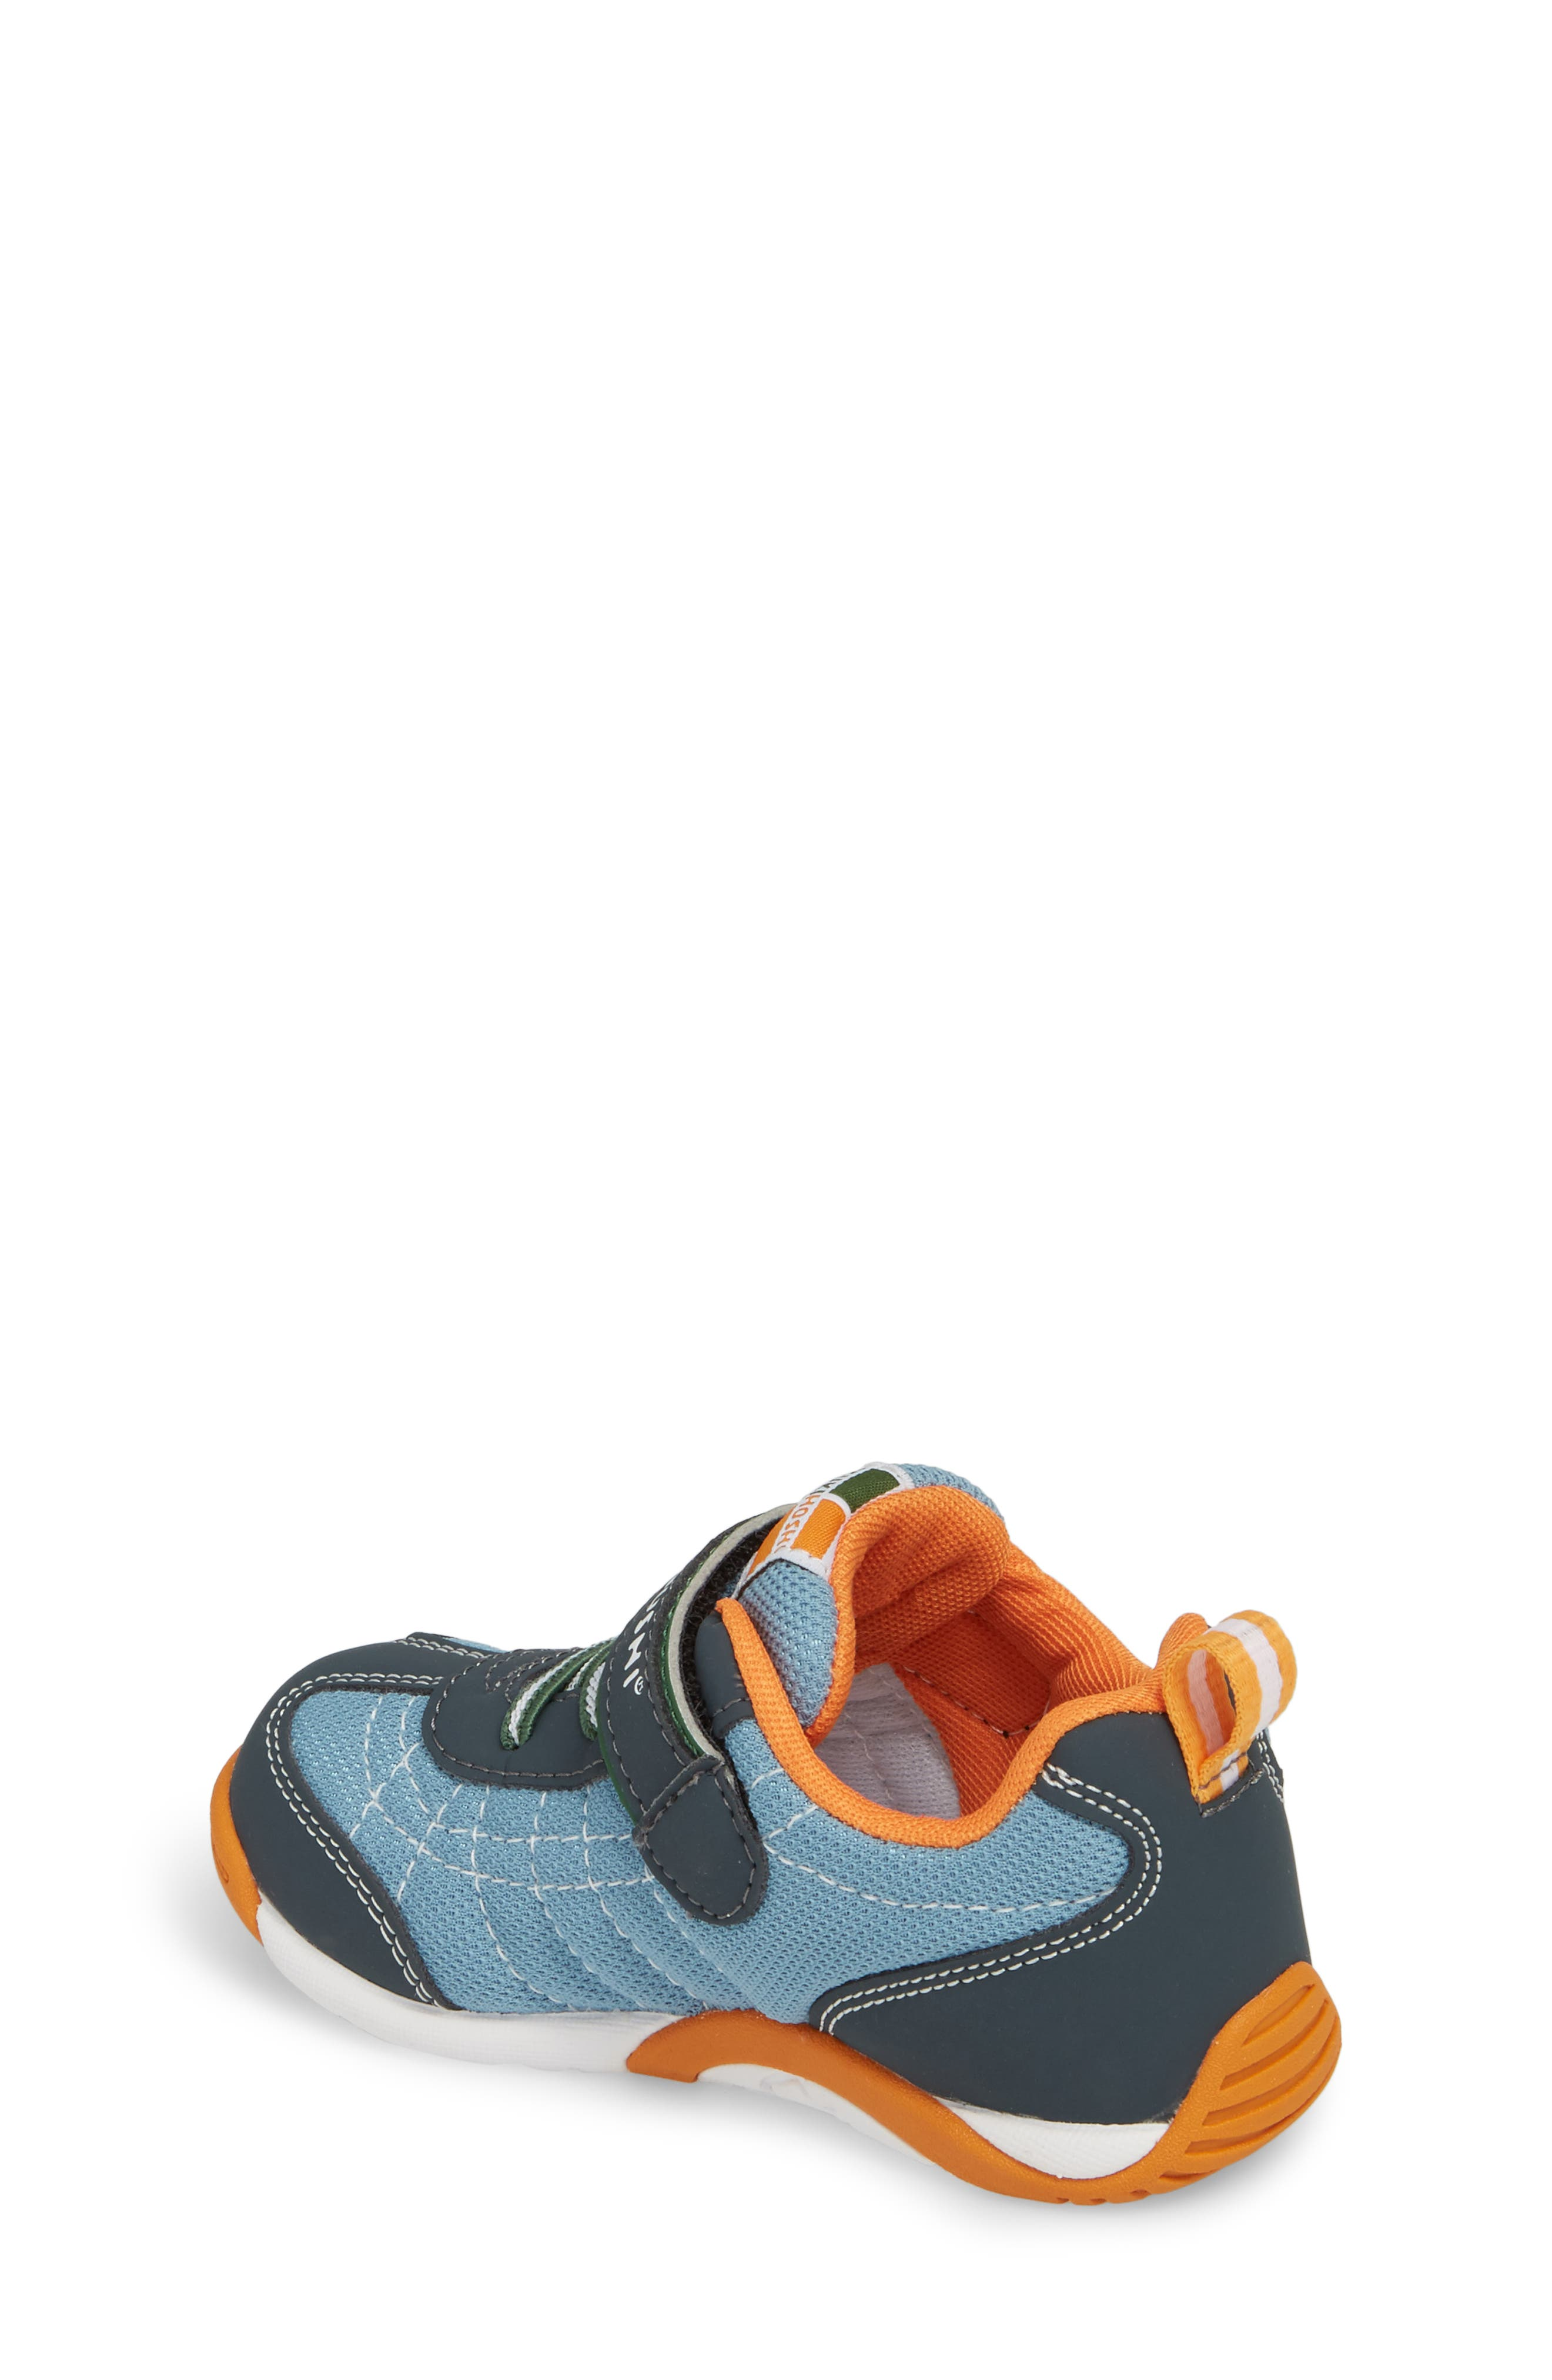 Kaz Washable Sneaker,                             Alternate thumbnail 2, color,                             CHARCOAL/ SEA